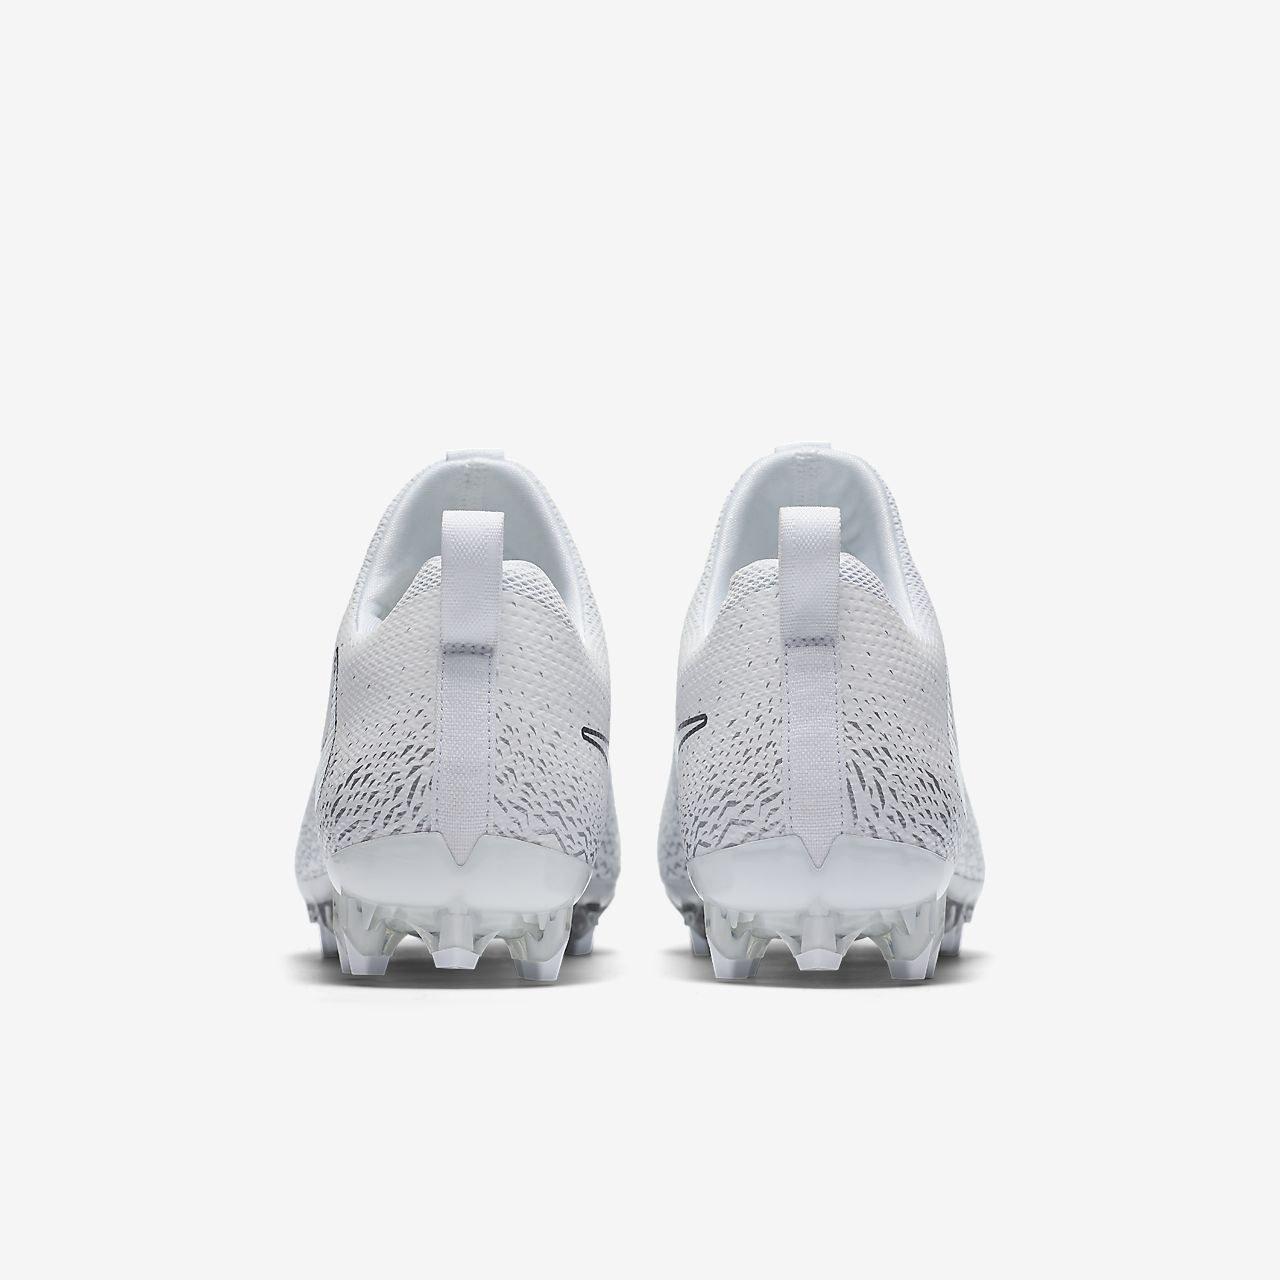 white nike football cleats nike white tennis sneakers